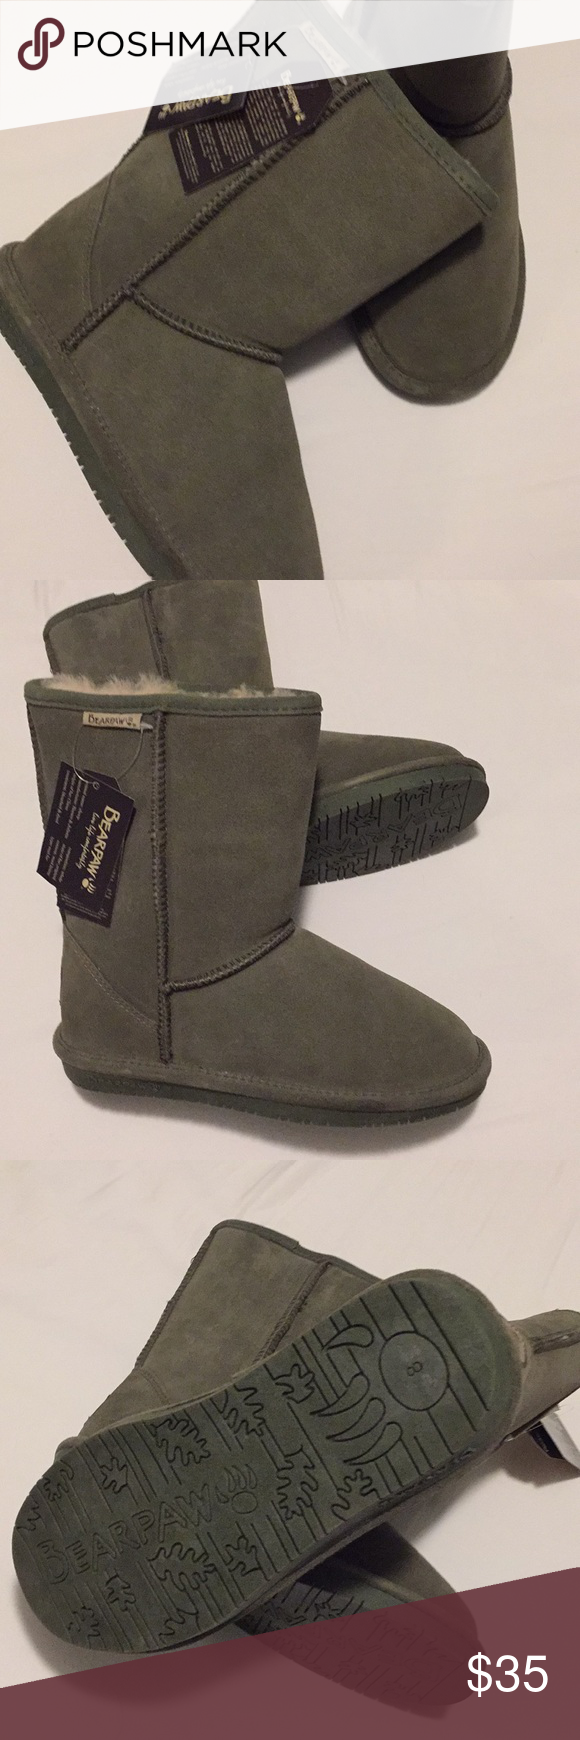 BearPaw Boots | Boots, Bearpaw boots